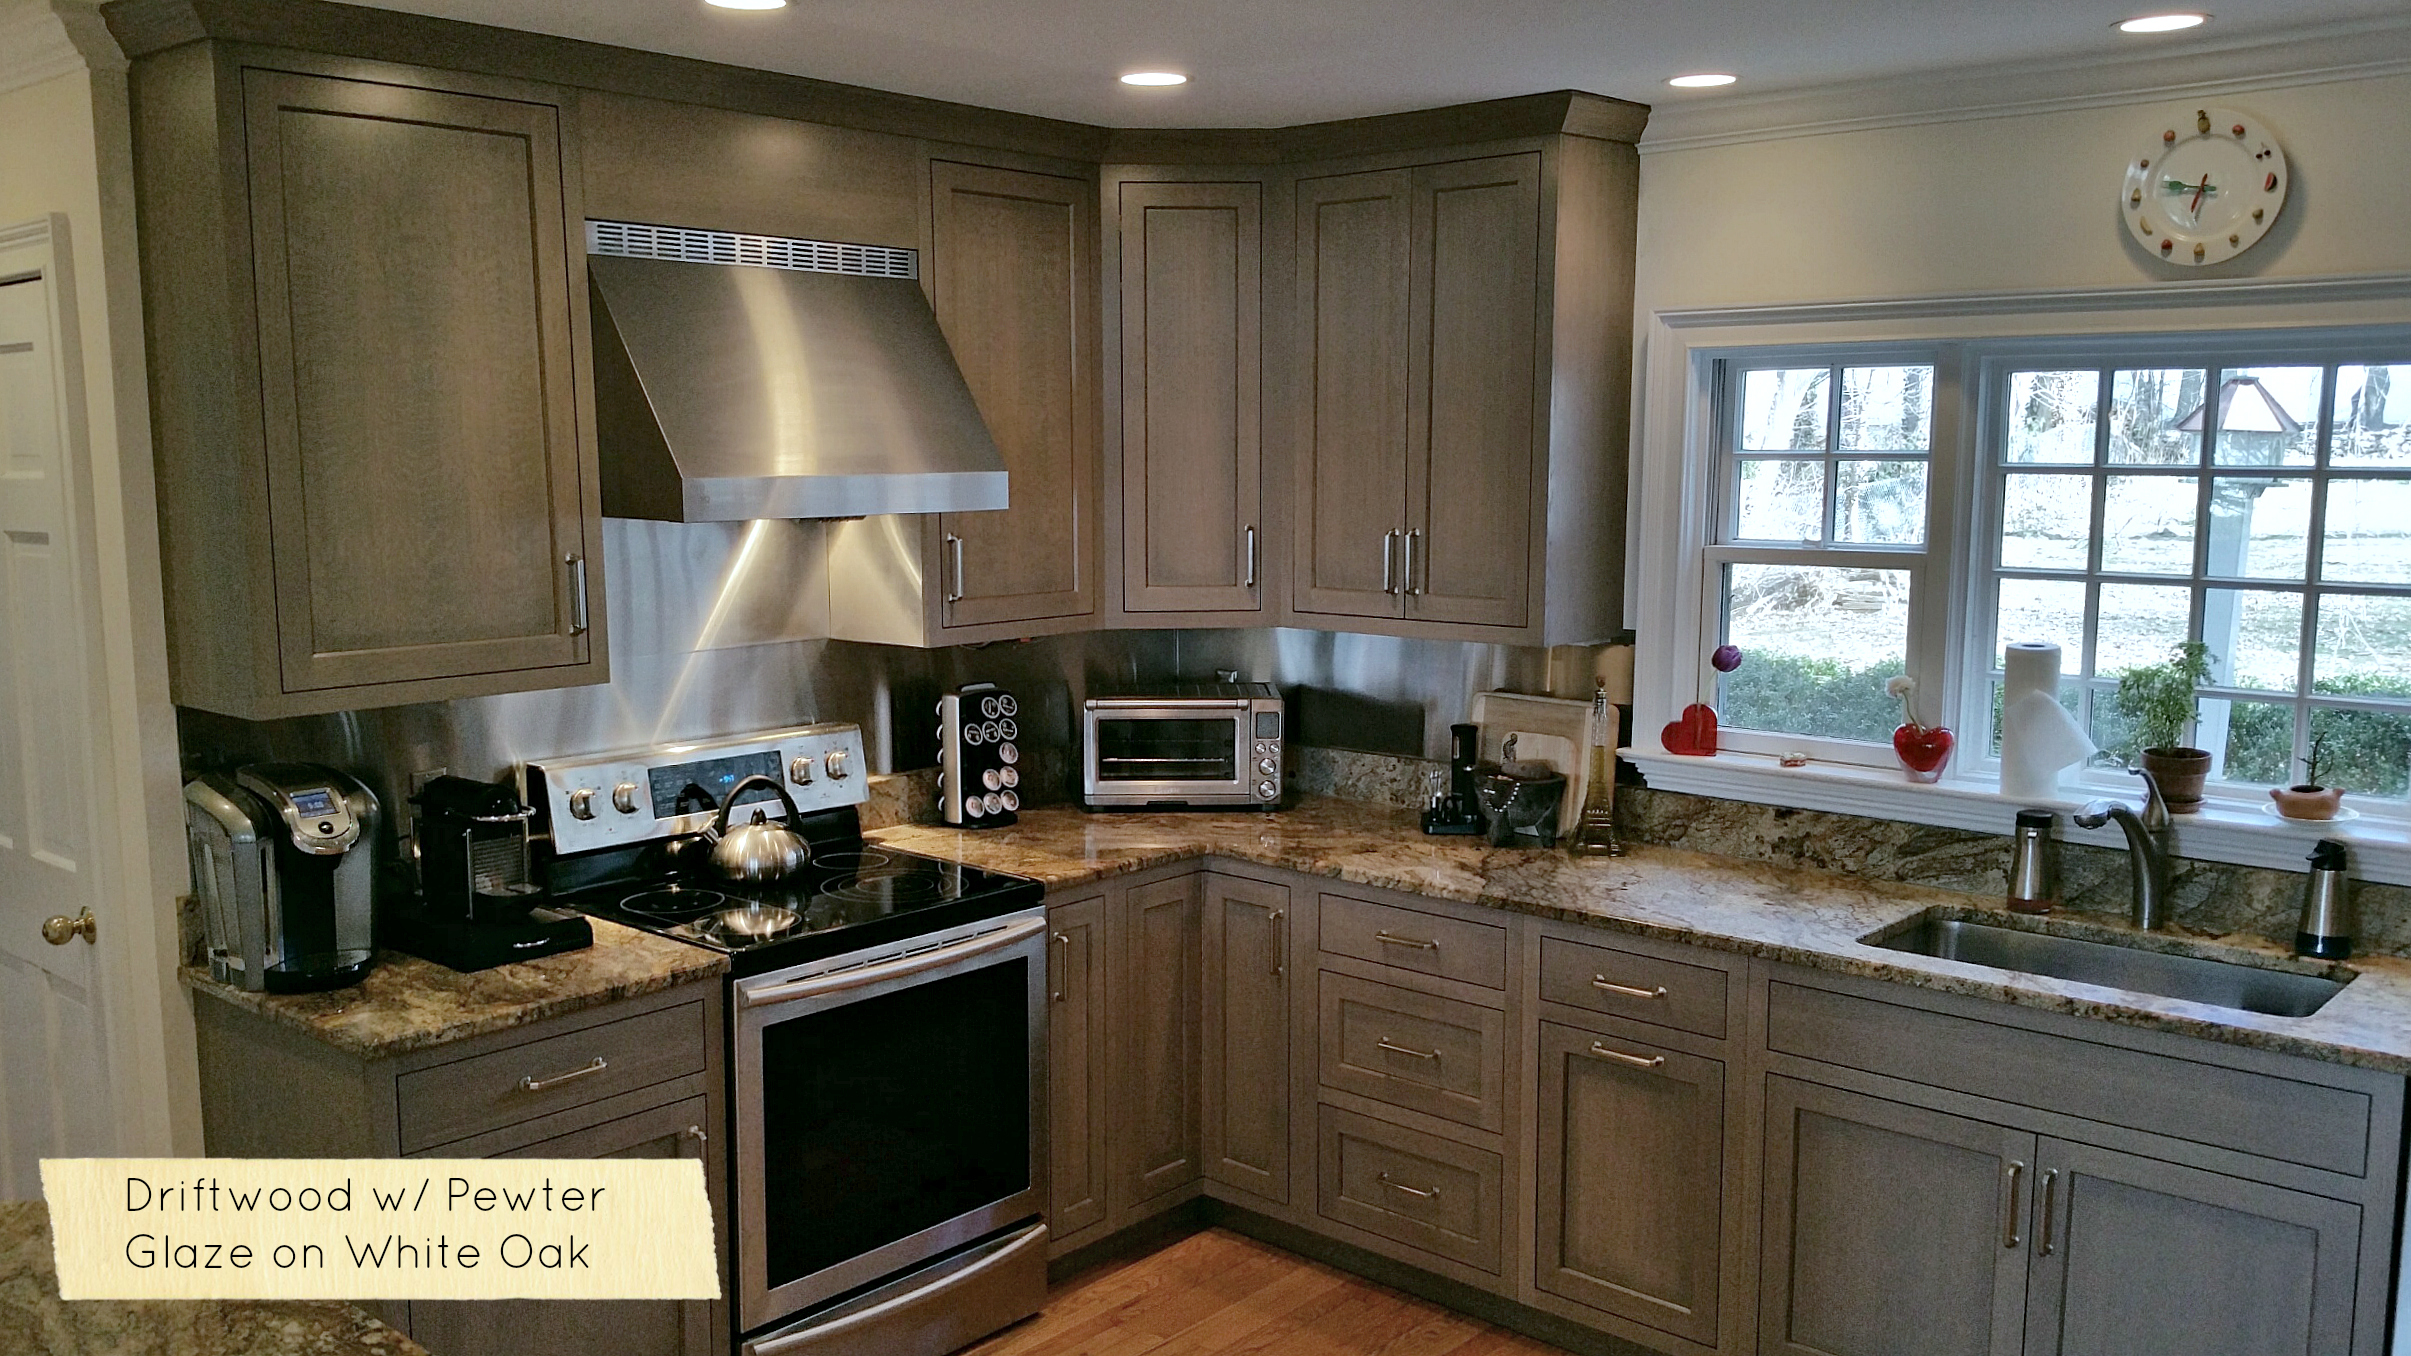 New Kitchen Cabinet Colors And Driftwood Grey Stains 2018 Ackley Cabinet Llc